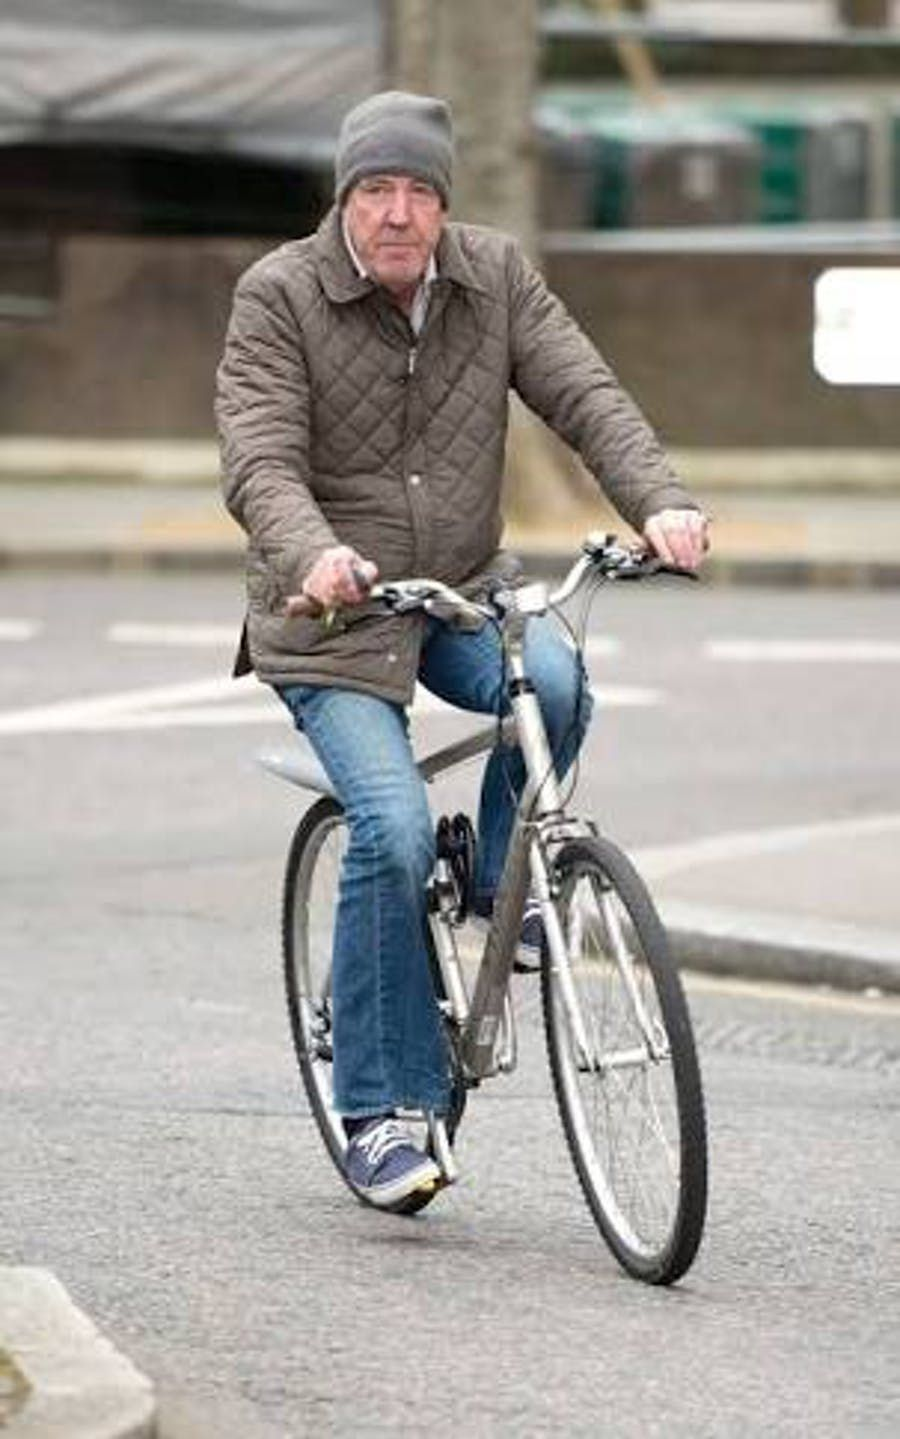 Jeremy Clarkson On A Bicycle I Ve Only Seen Him Behind The Wheel